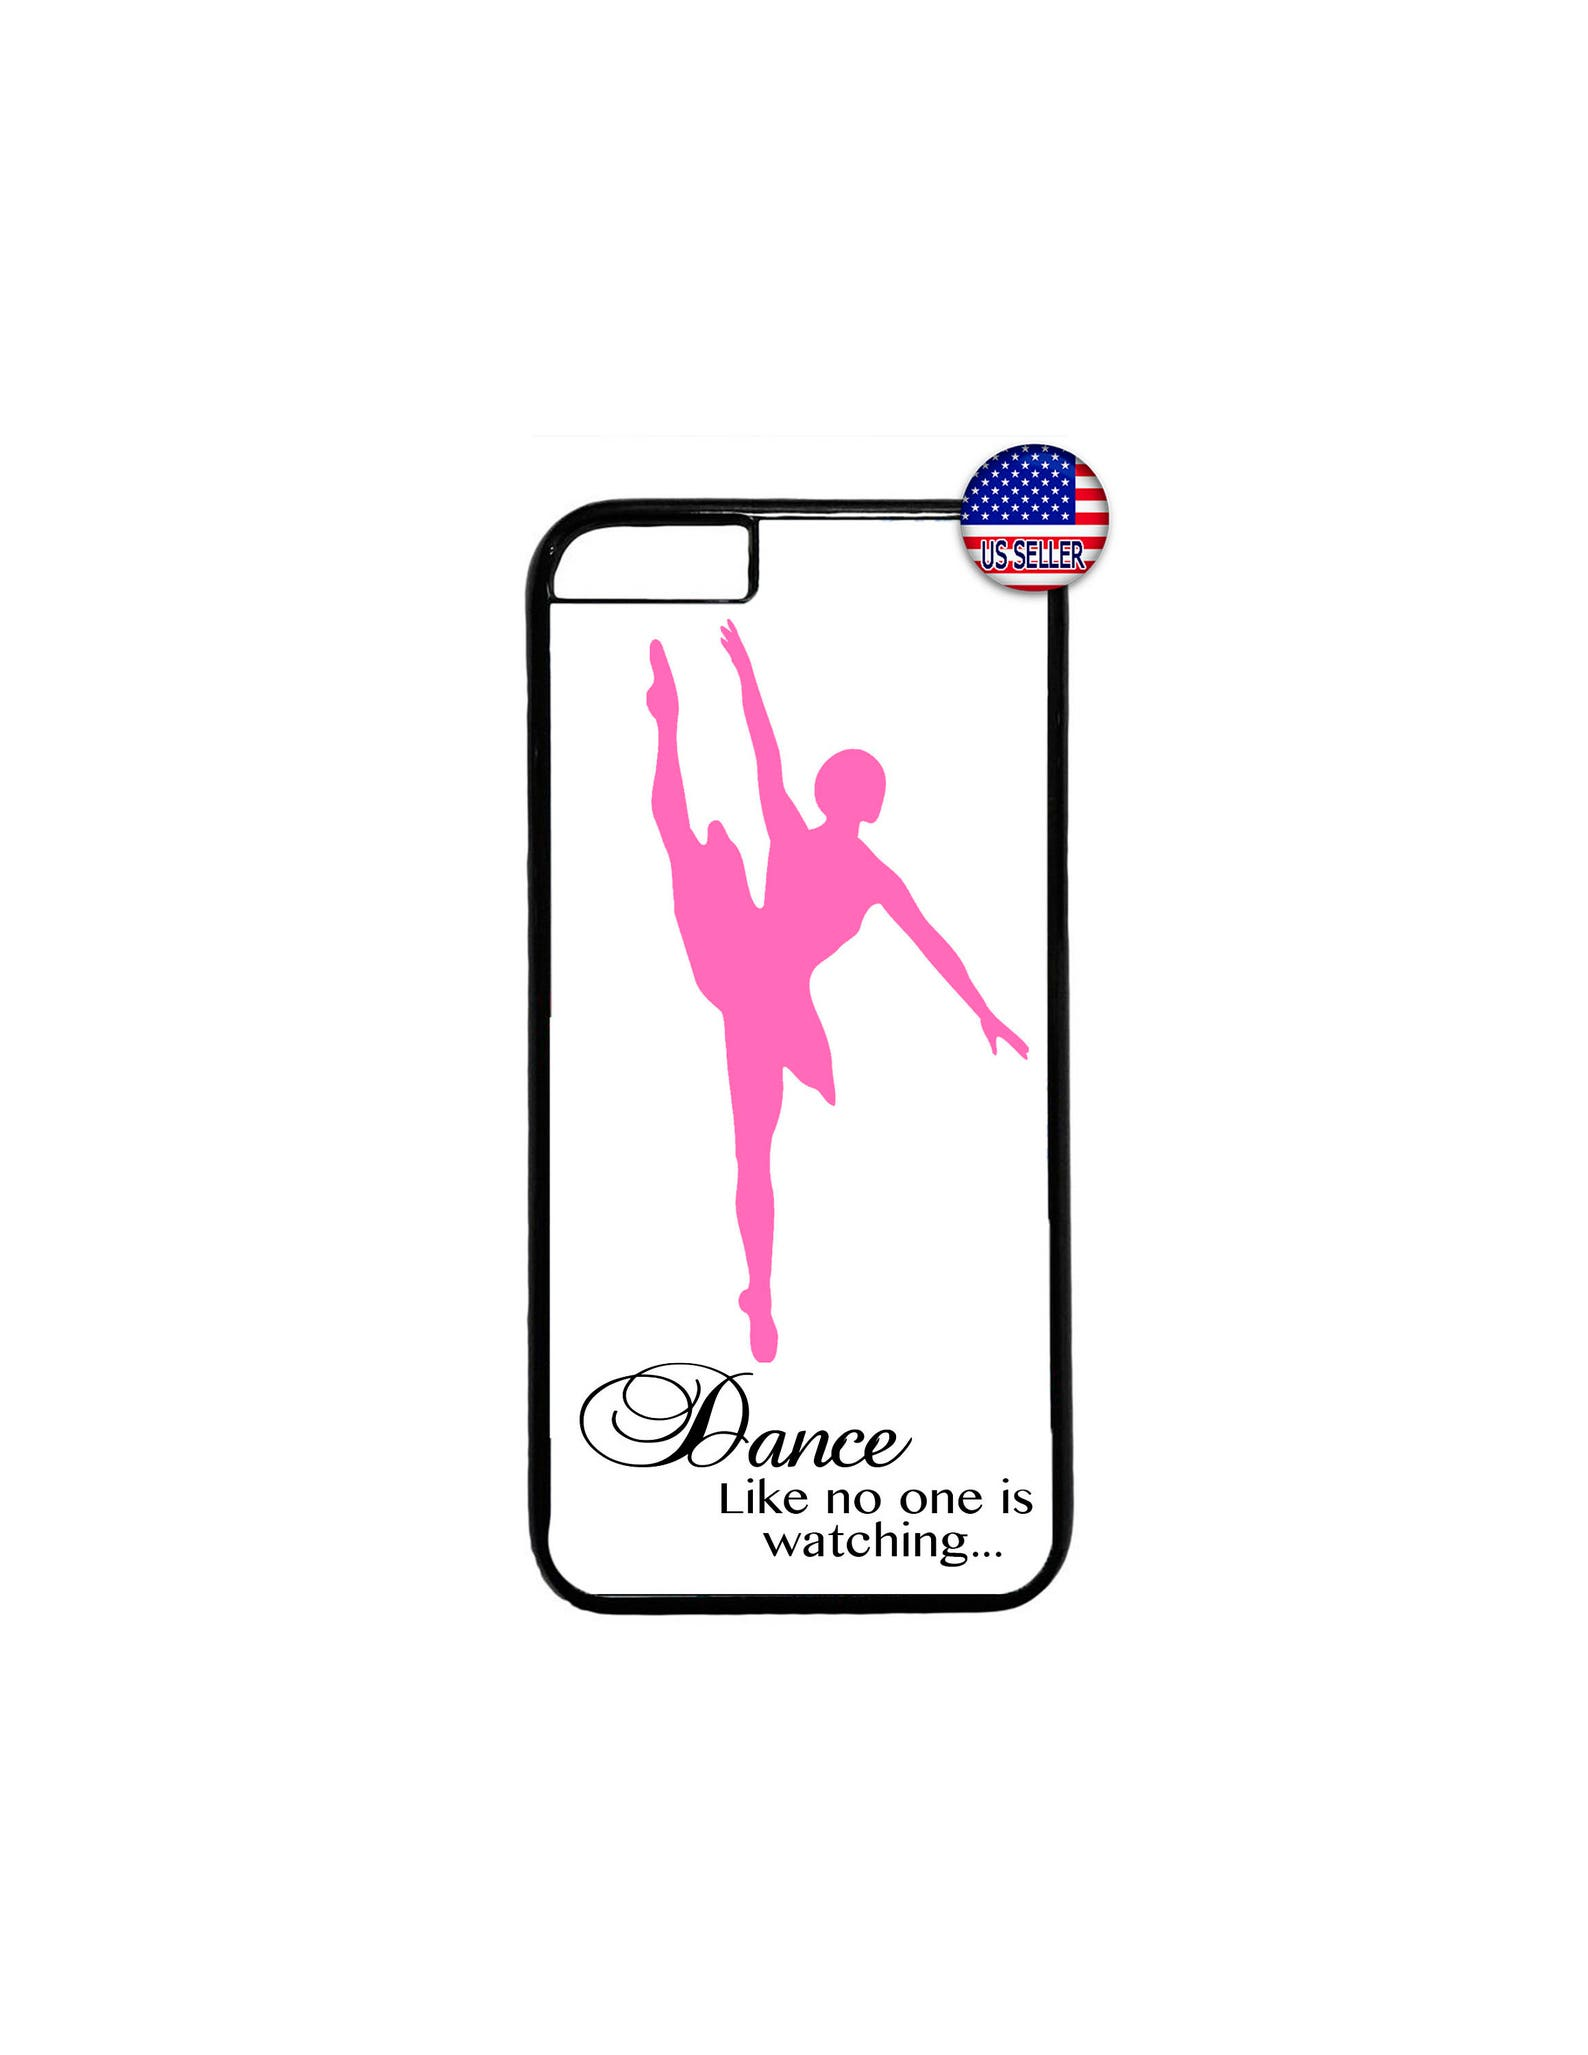 ballerina ballet dancer hard rubber tpu slim case cover for iphone 8 7 6 6s plus x xs max 5 4 se ipod touch 4 5 6 7